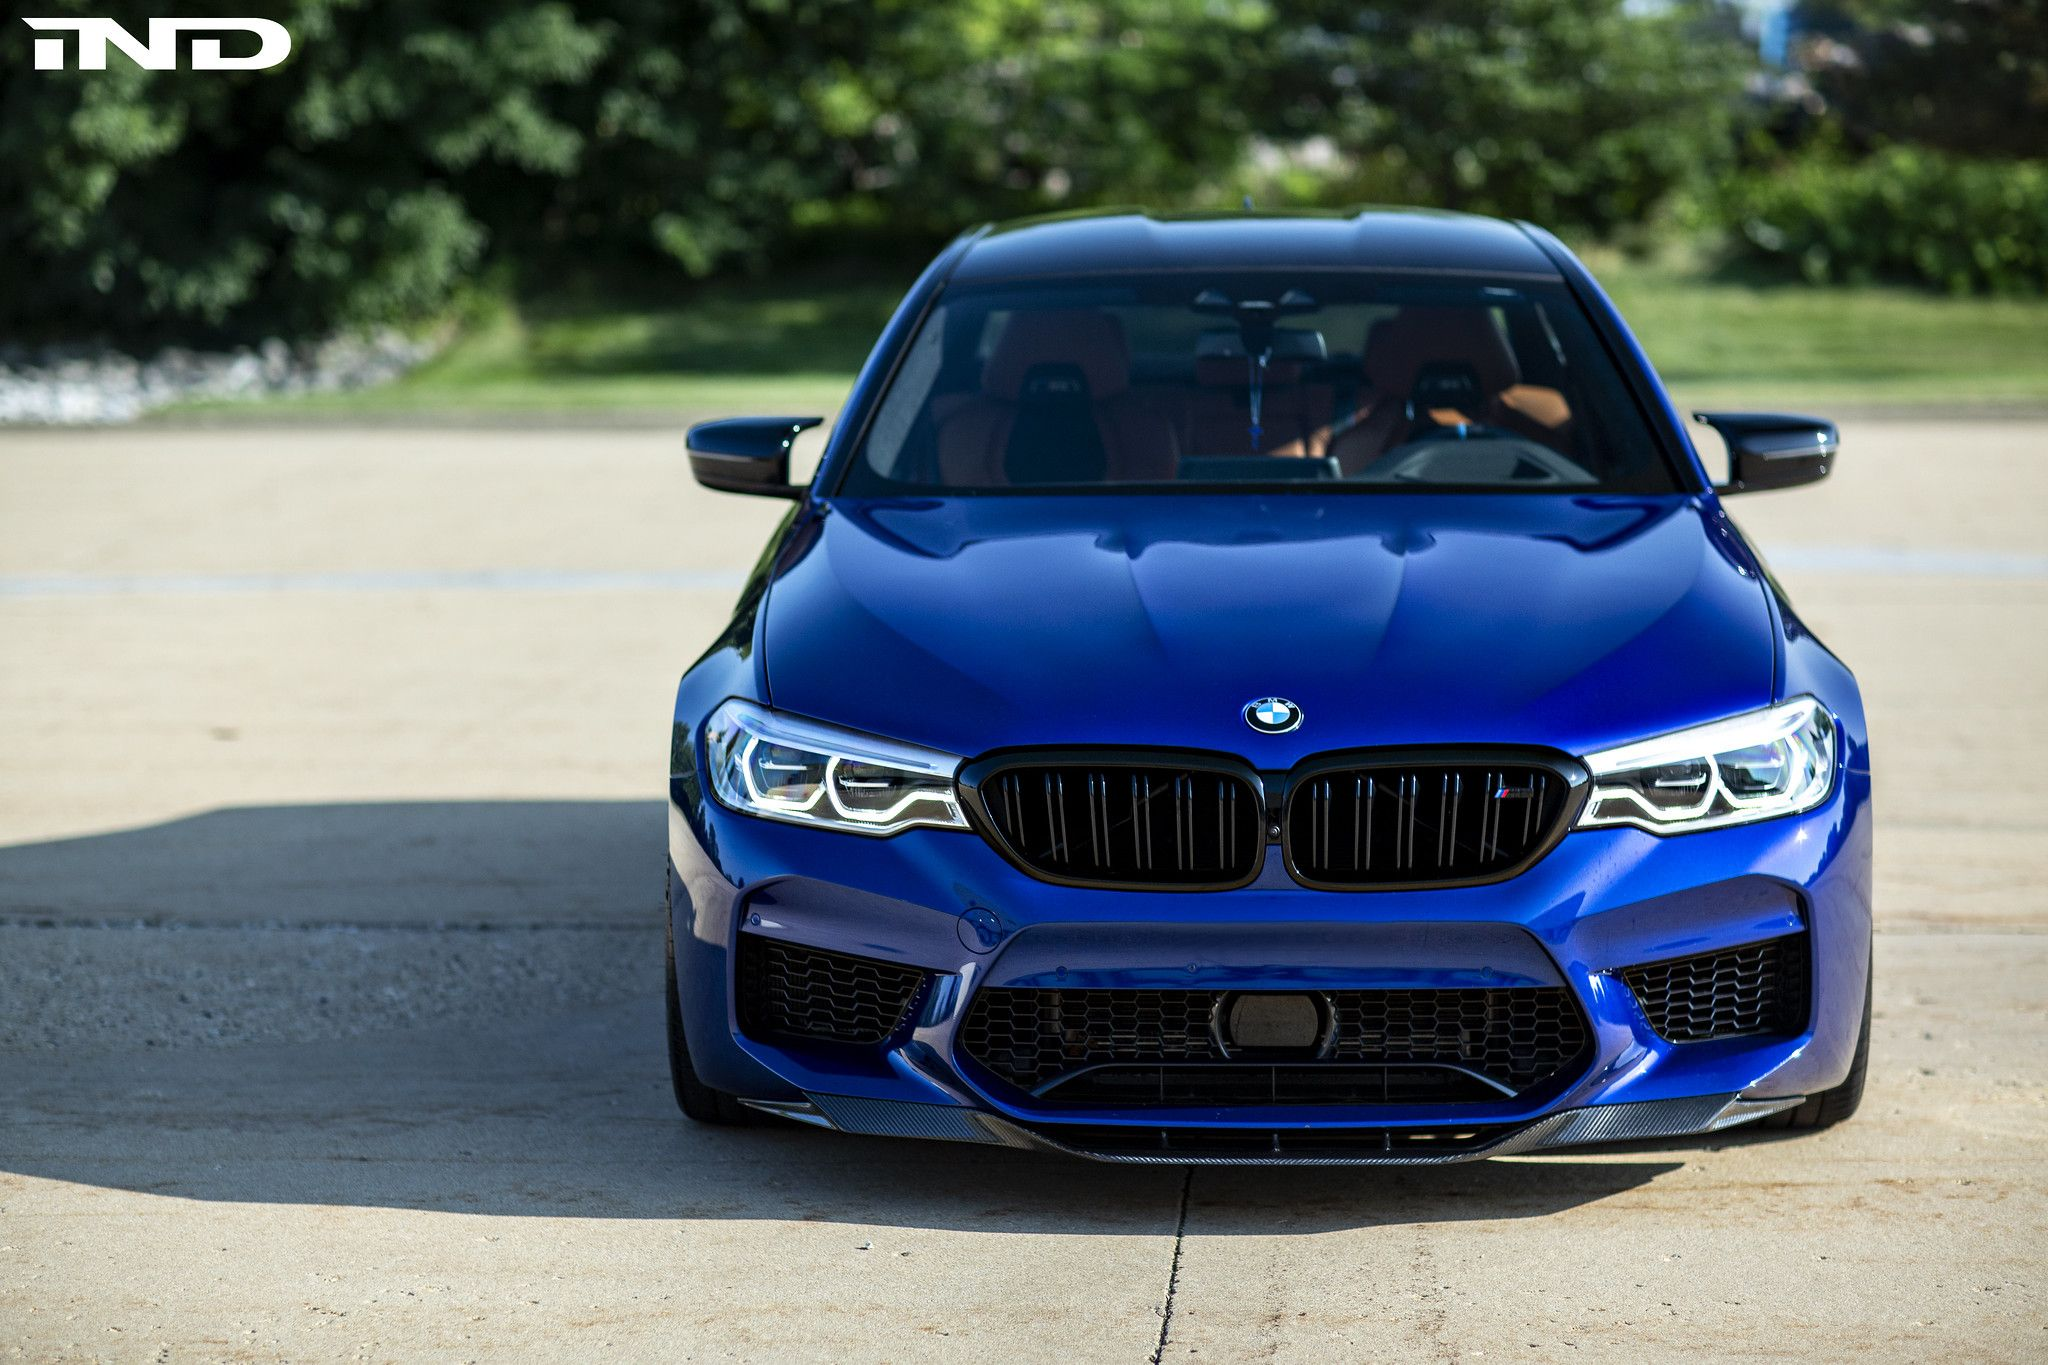 Pin By Joao Leal On Avtomobili In 2020 Bmw Luxury Car Brands Bmw M4